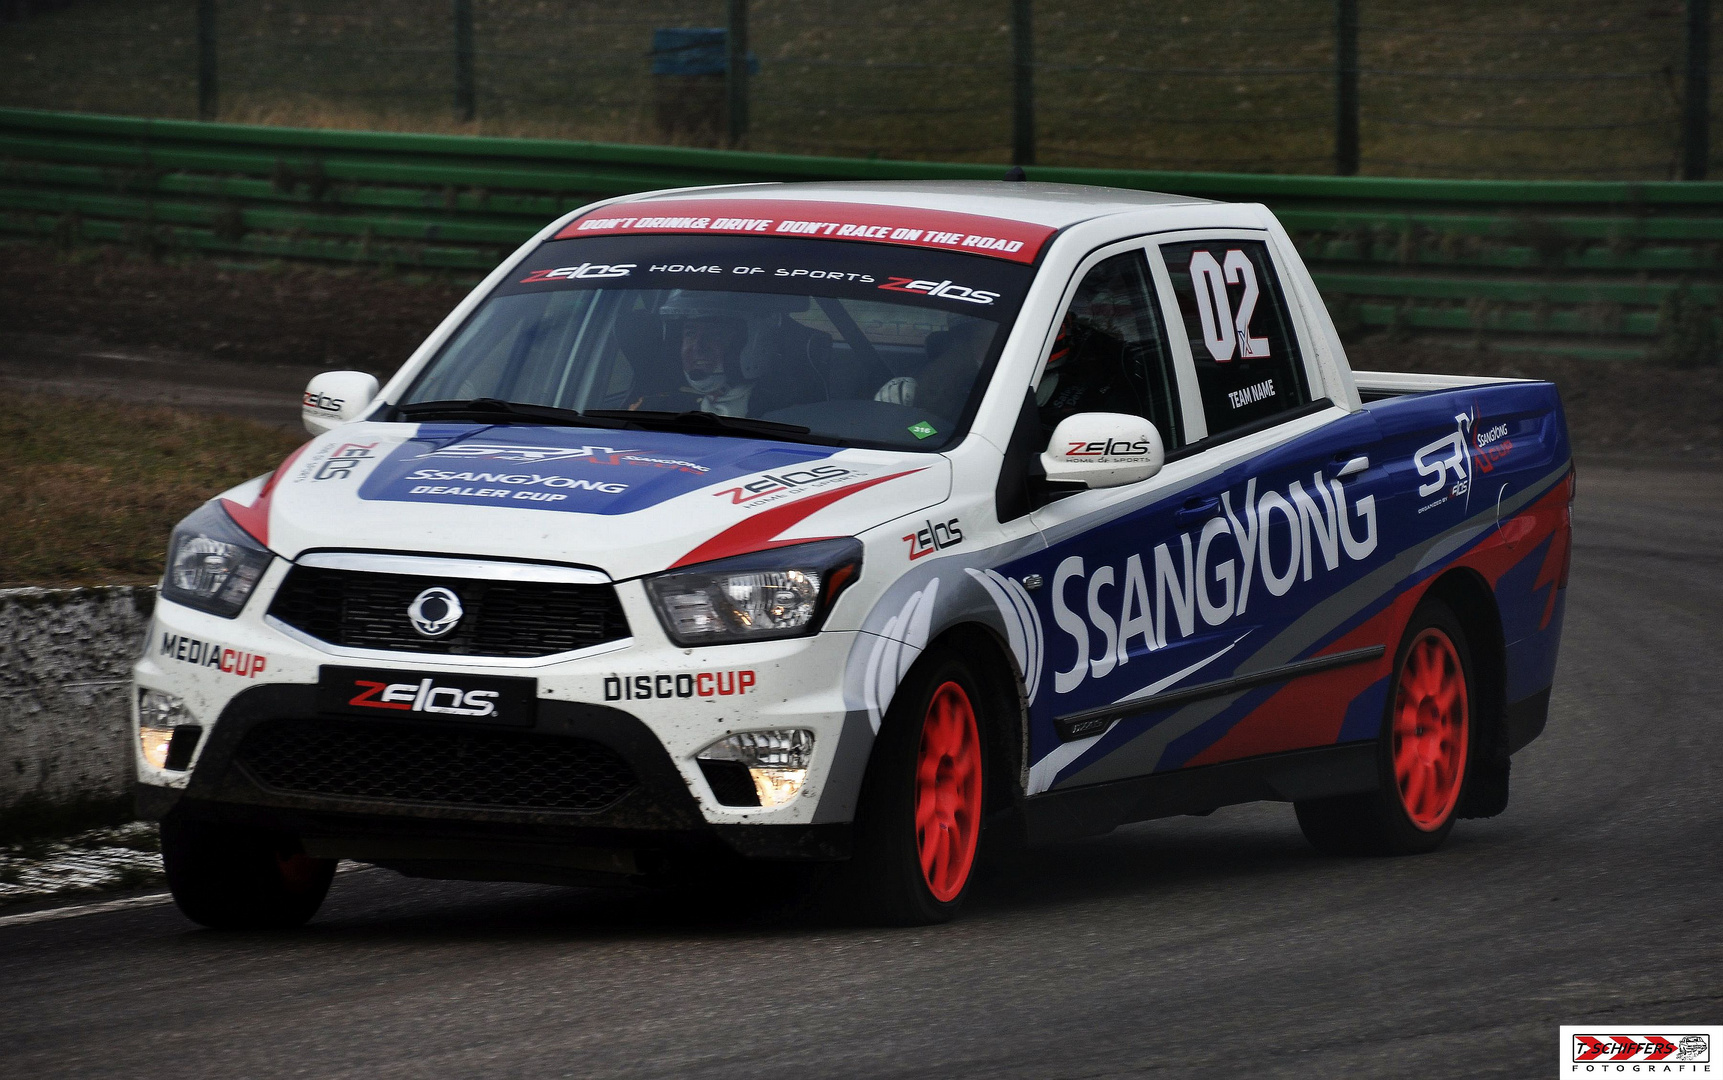 SSANGYONG RX CUP 2017